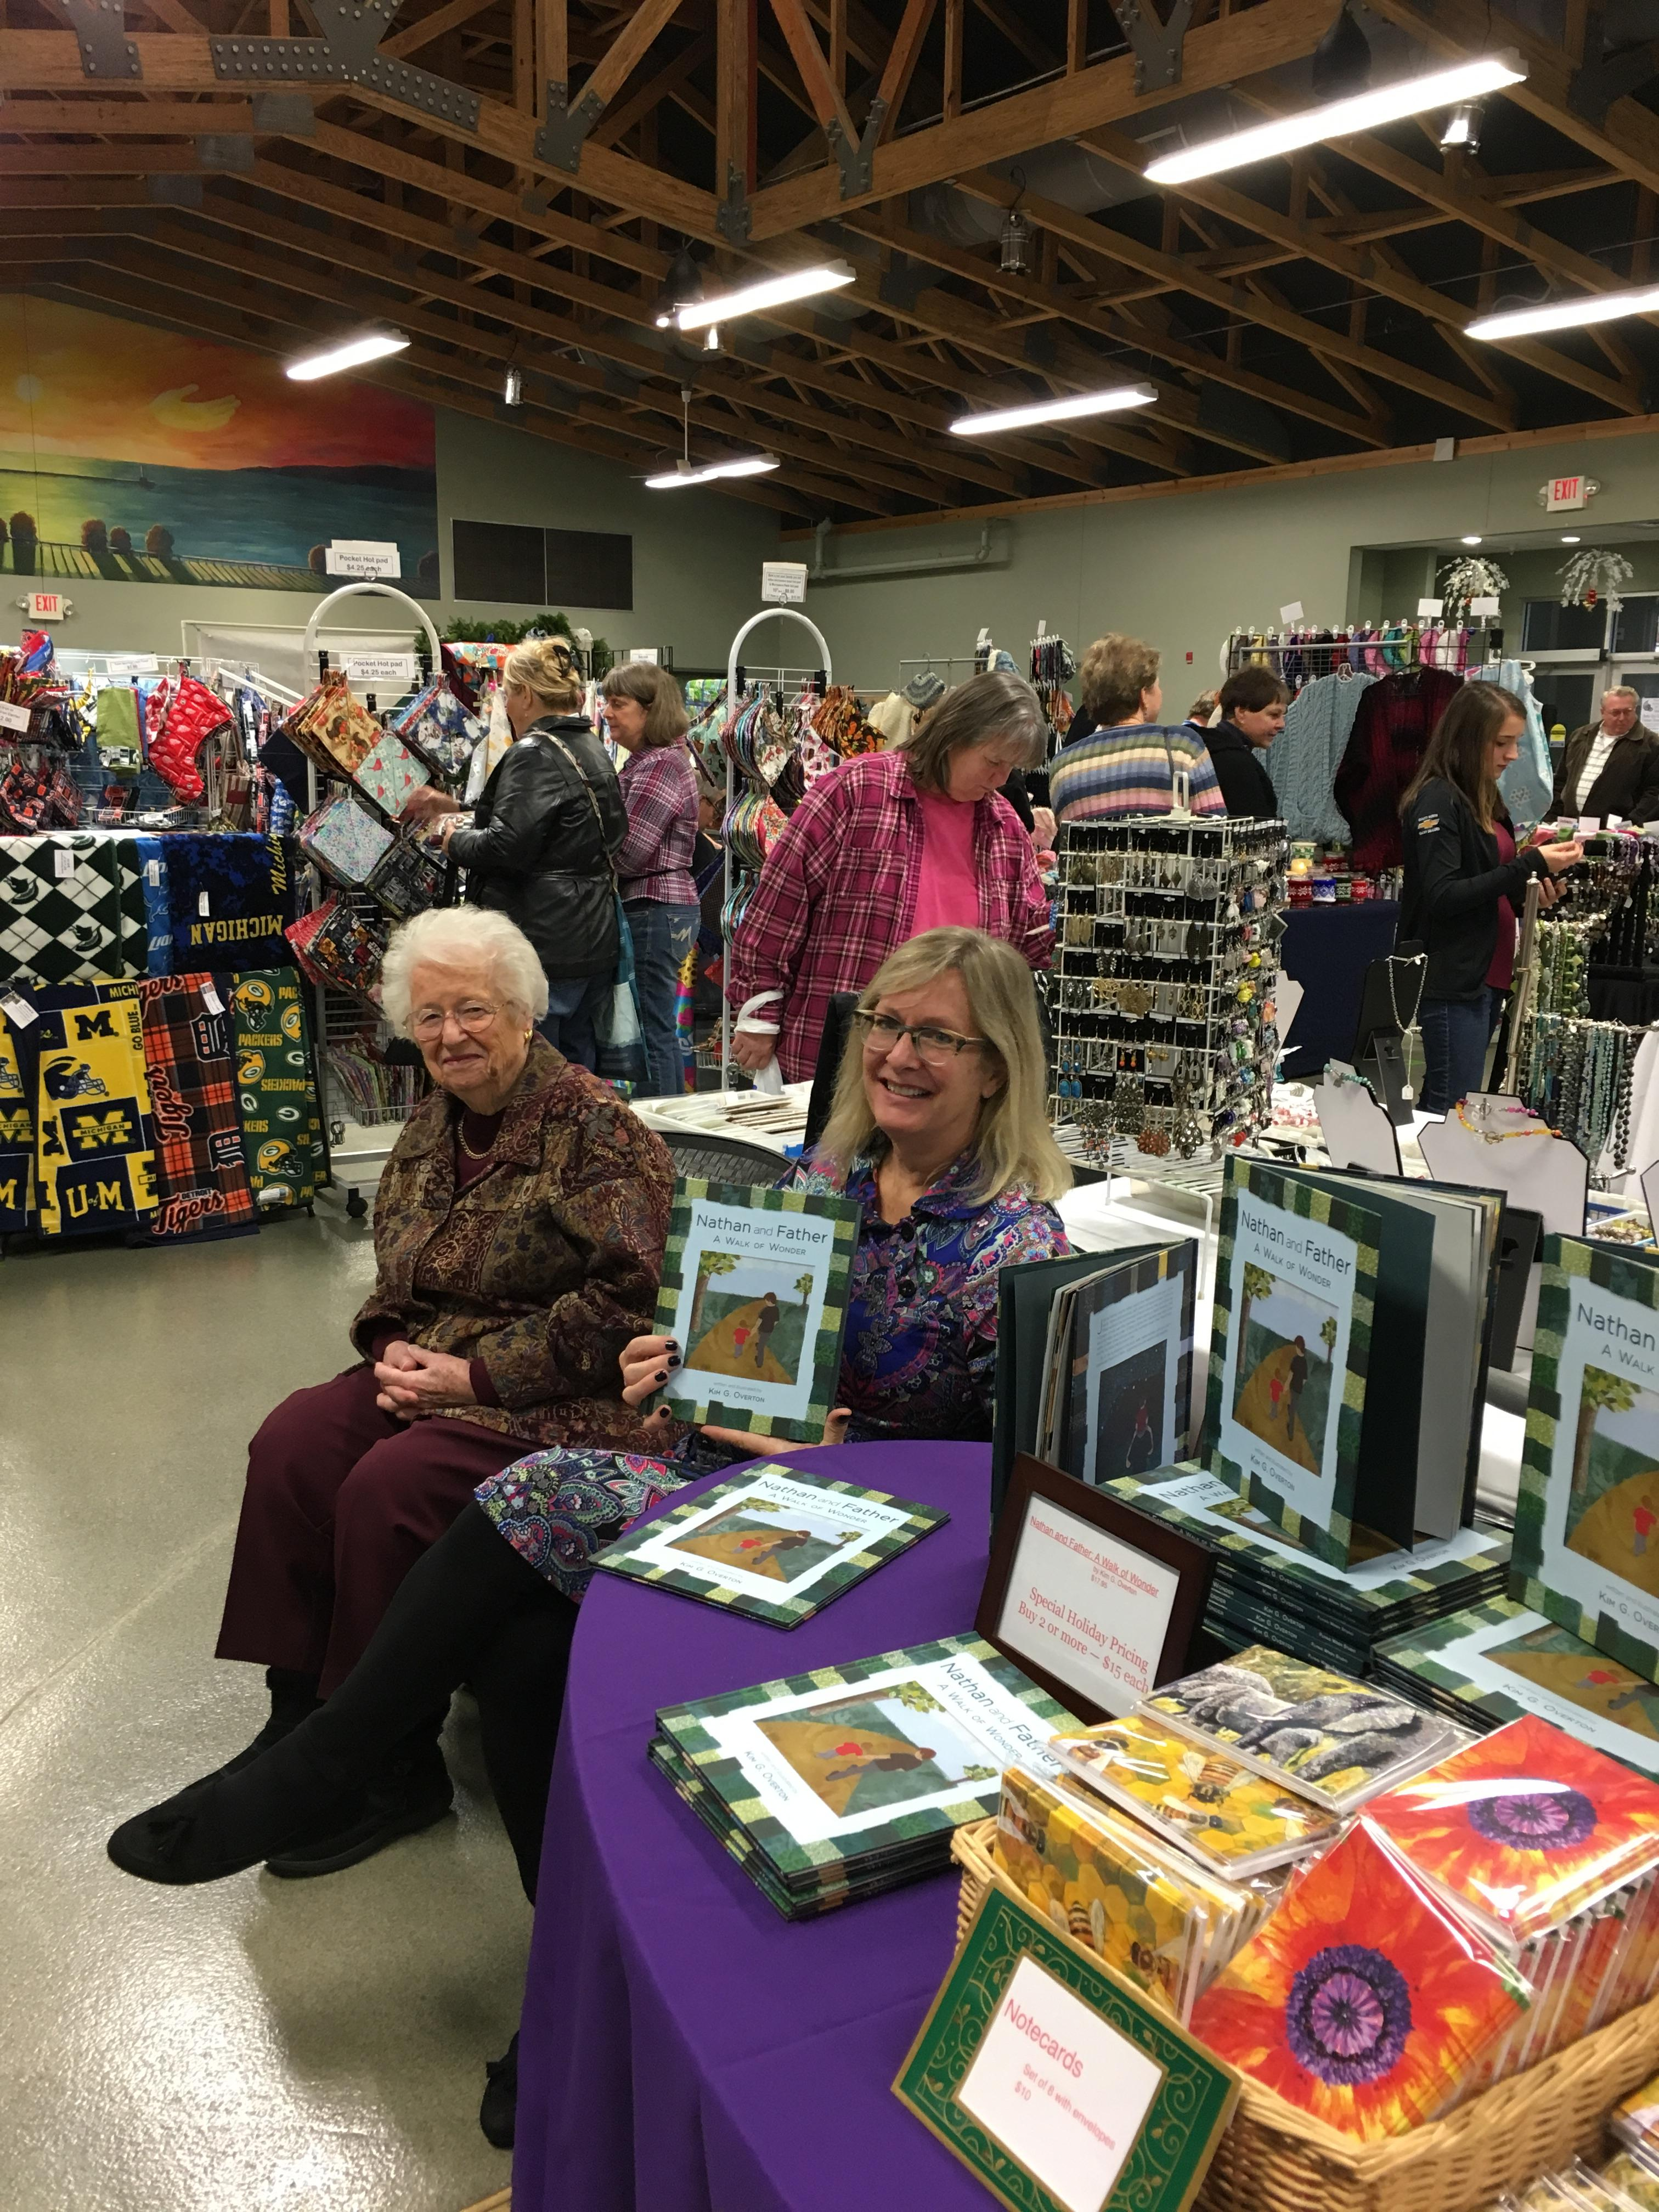 A craft show in Emmet County collected food and money to benefit a local food pantry.